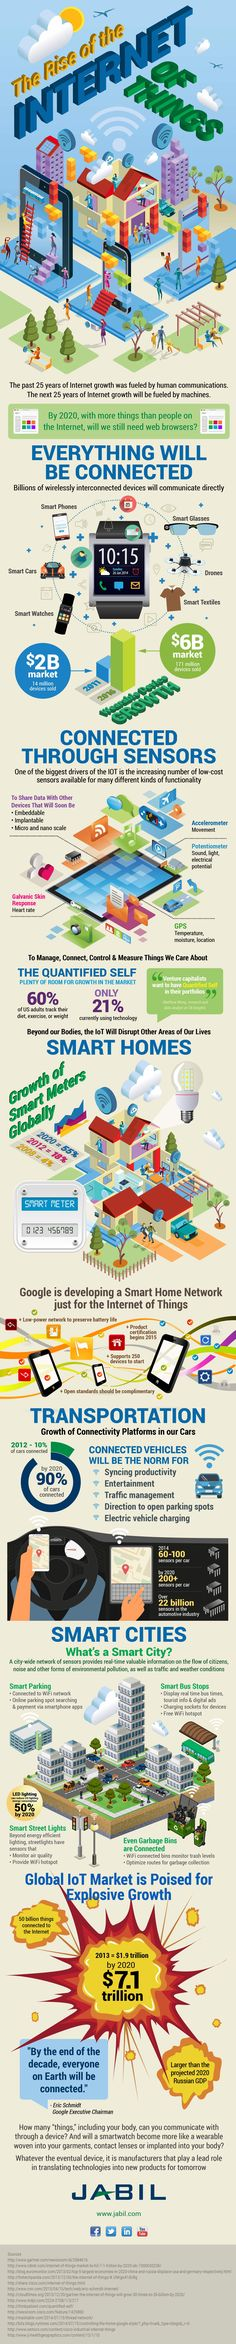 http://ajiboye.digimkts.com Excellent price The Rise of the Internet of Things #internetmarketingbusiness